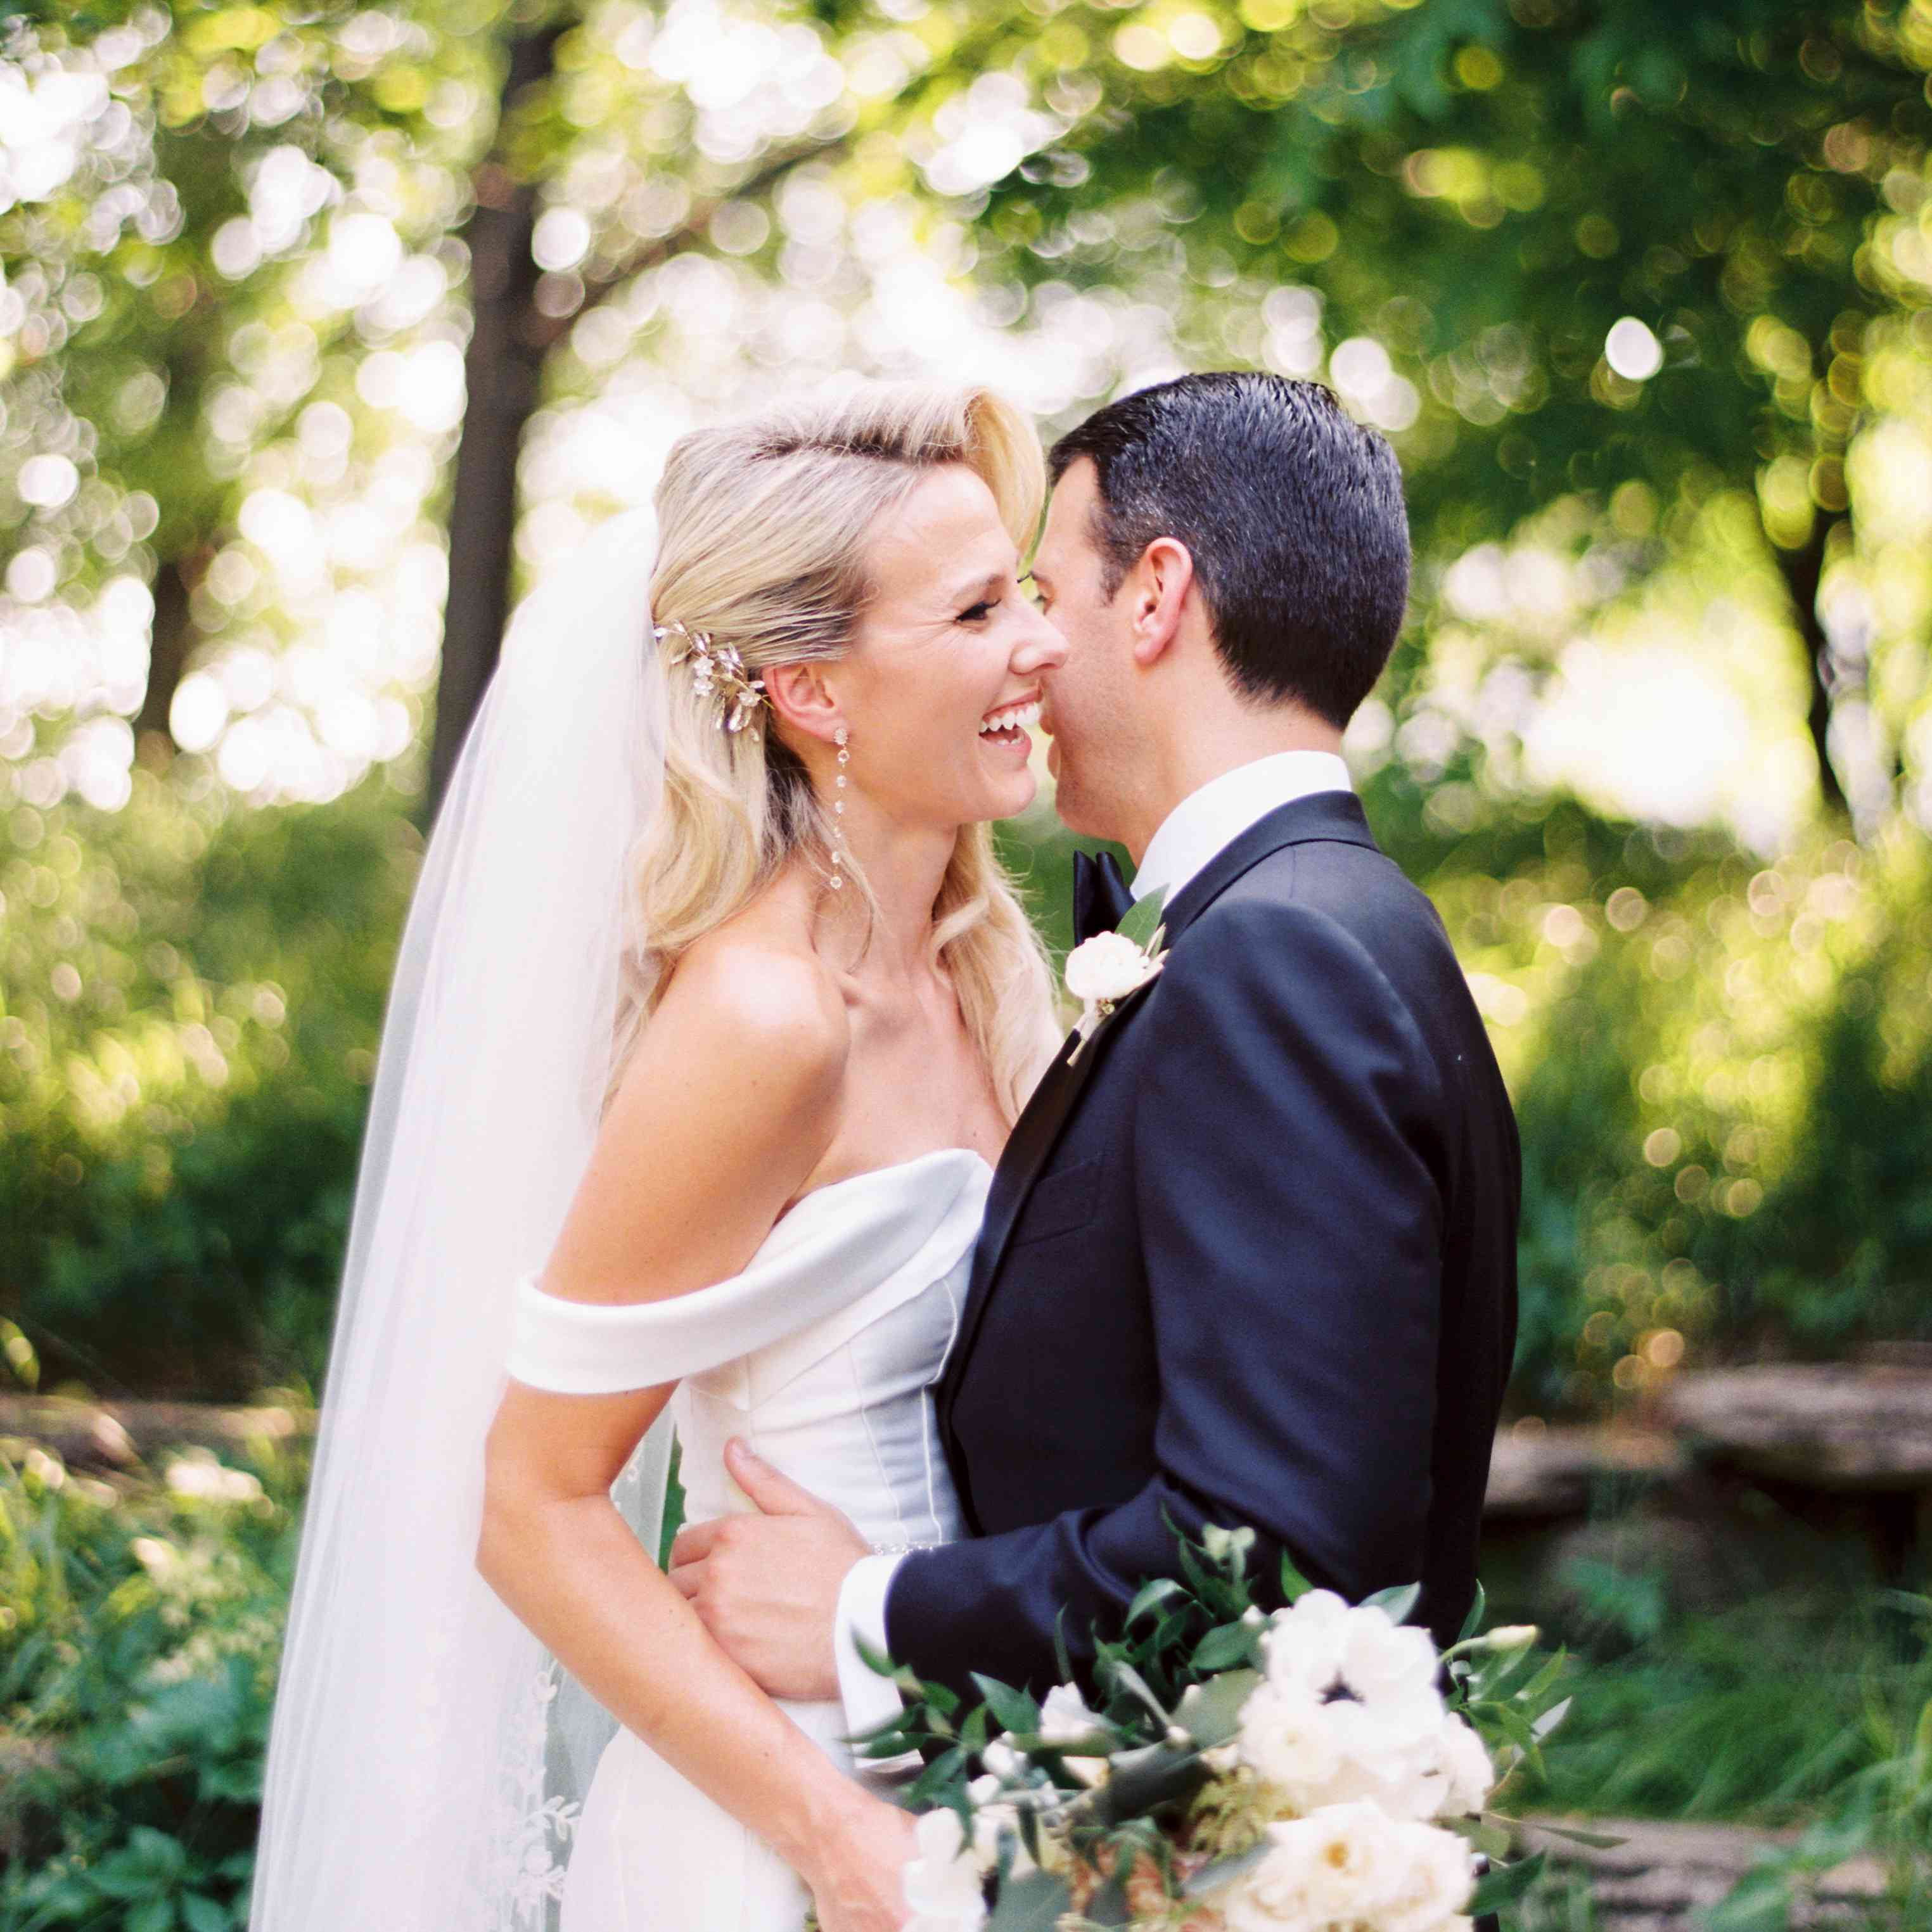 <p>Bride and groom in embrace</p><br><br>